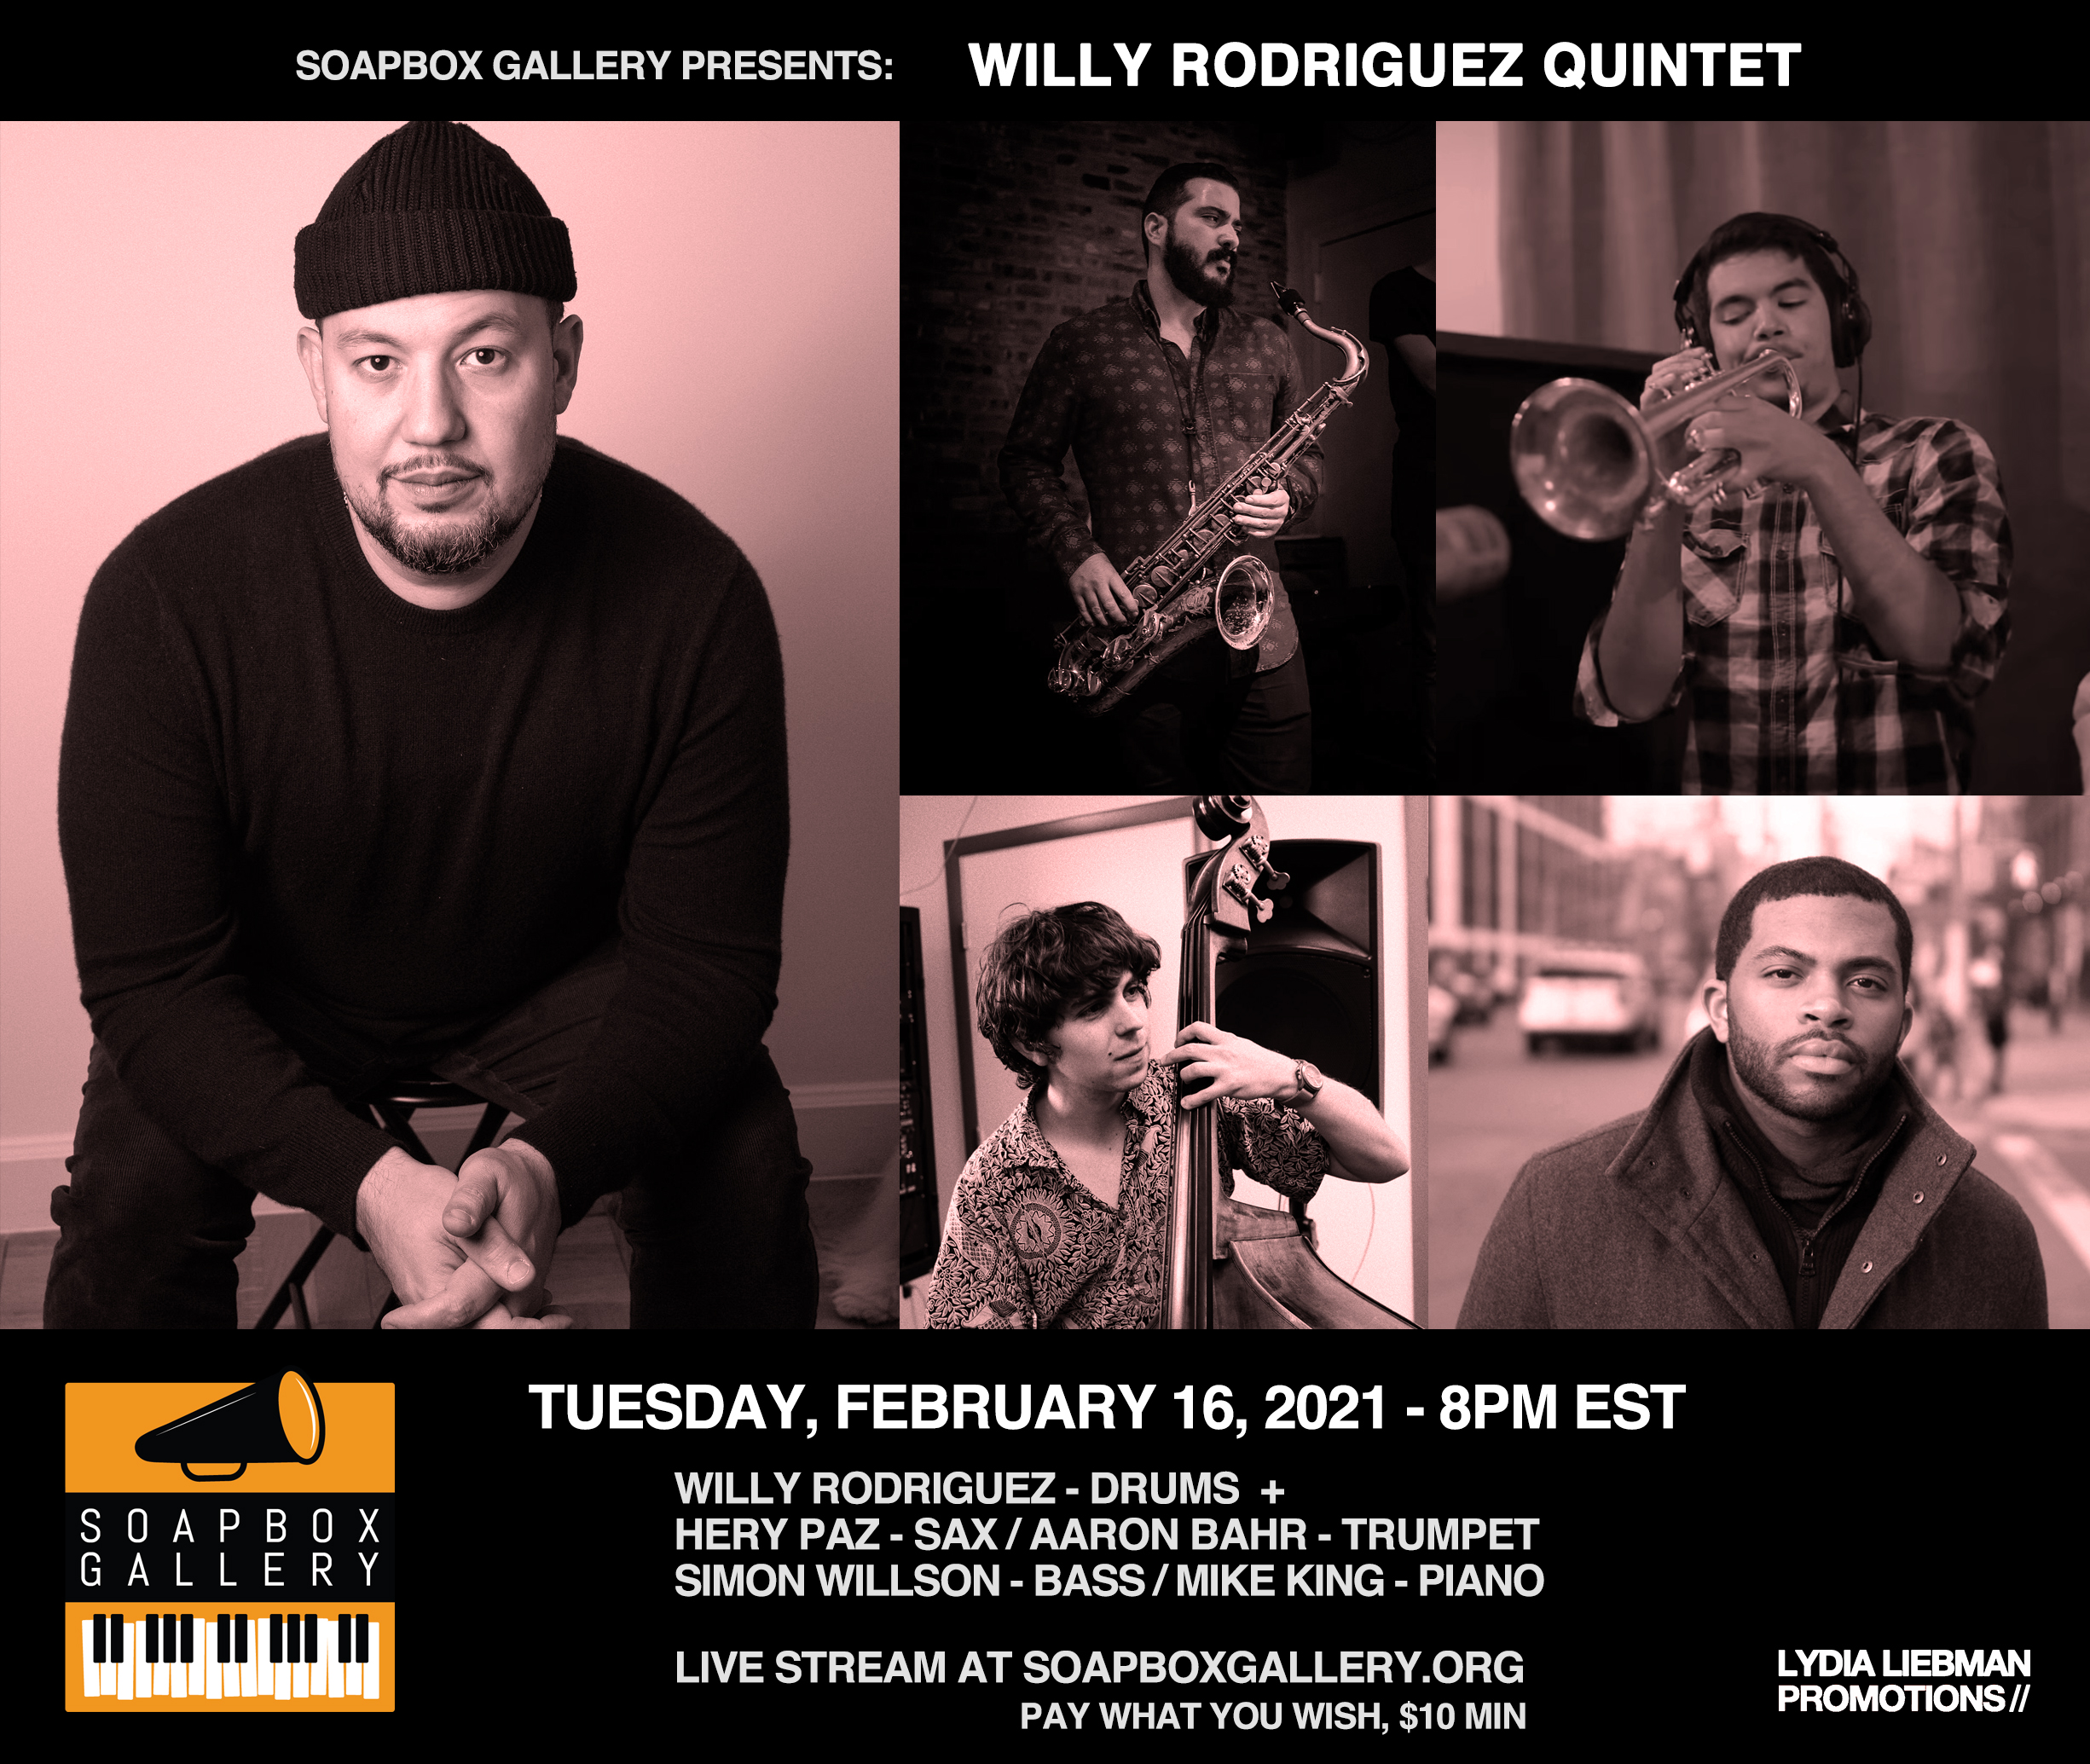 LIVE STREAM: Willy Rodriguez Quintet at Soapbox Gallery 2/16/21